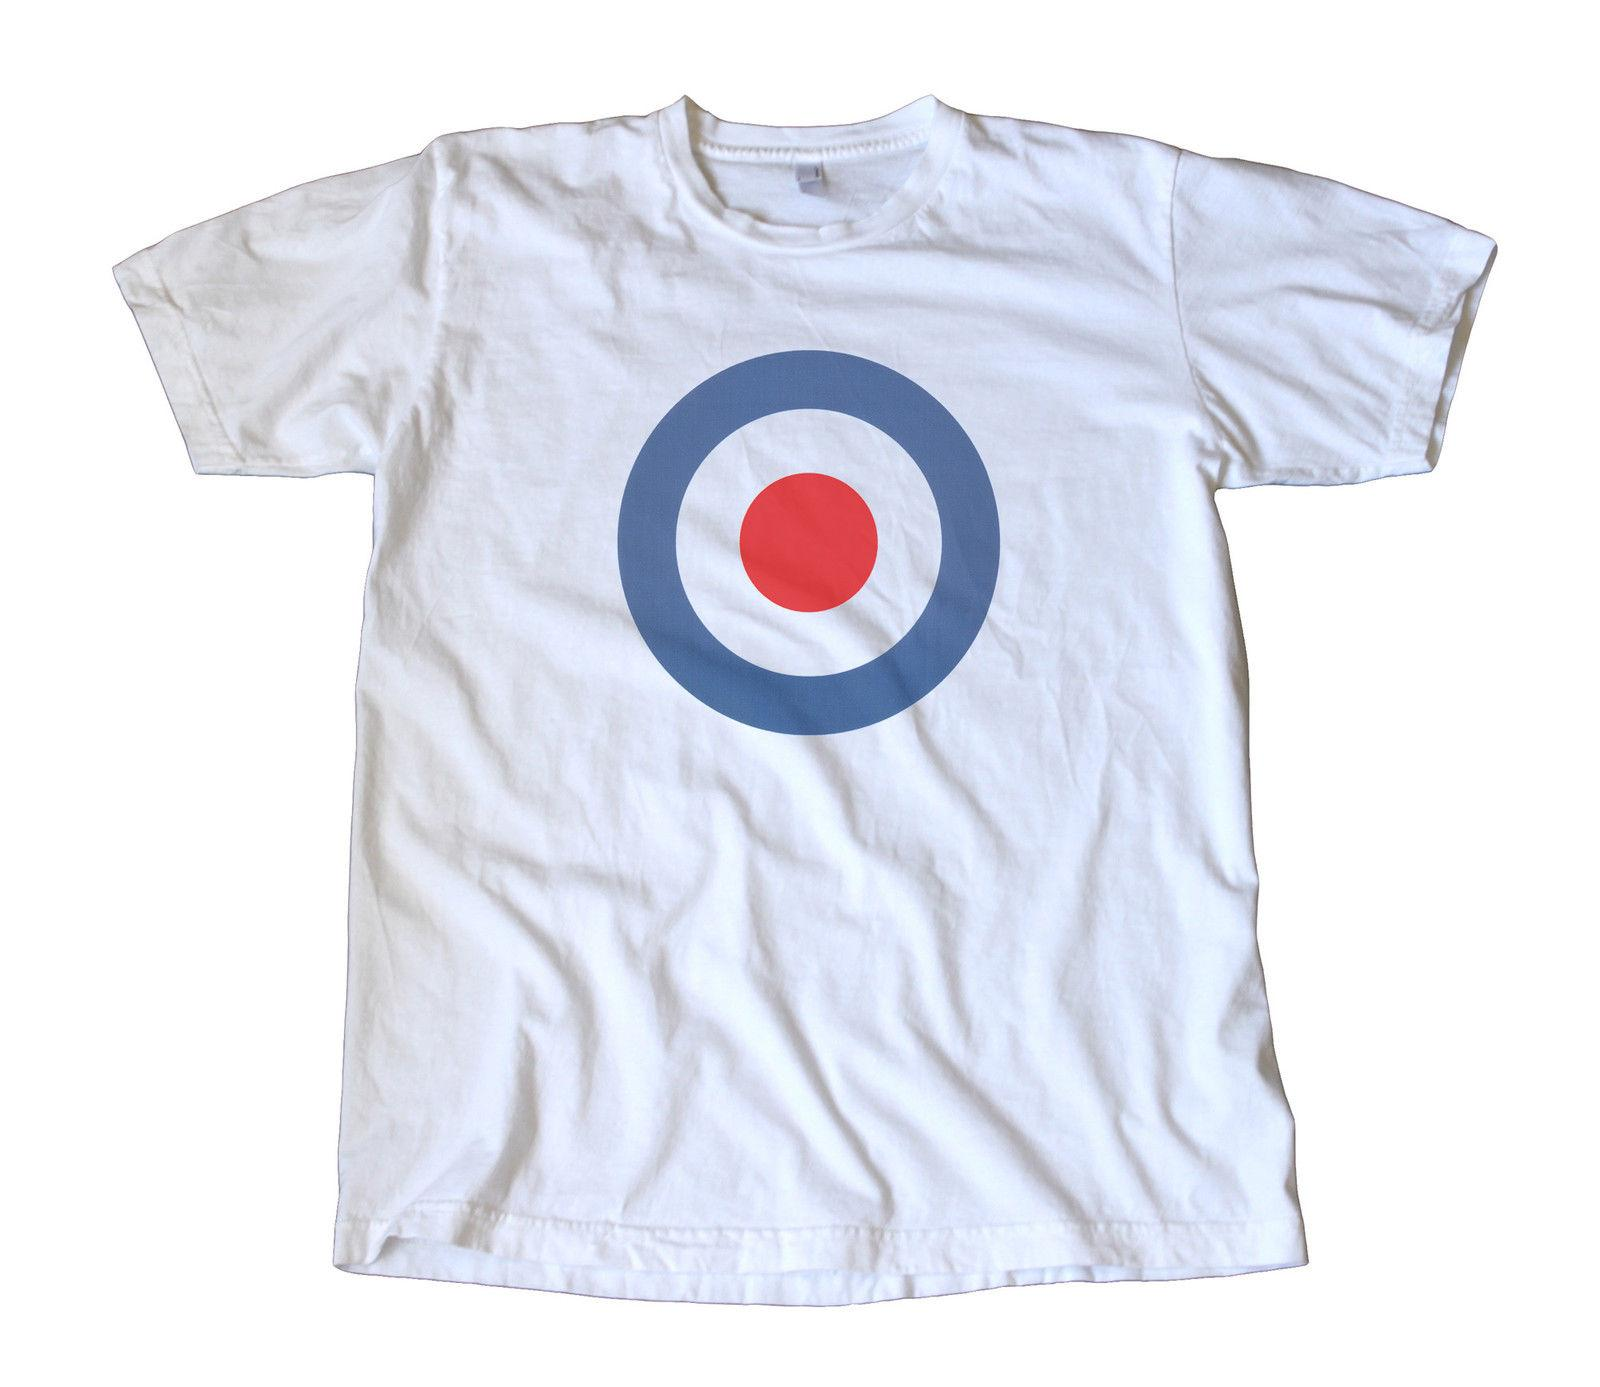 differently a7bfb 74f71 Vintage Classic RAF Decal T-Shirt - The Who, Mod, Vespa, Lambretta, Scooter  summer Hot Sale Men T-Shirt Top New Tee Print